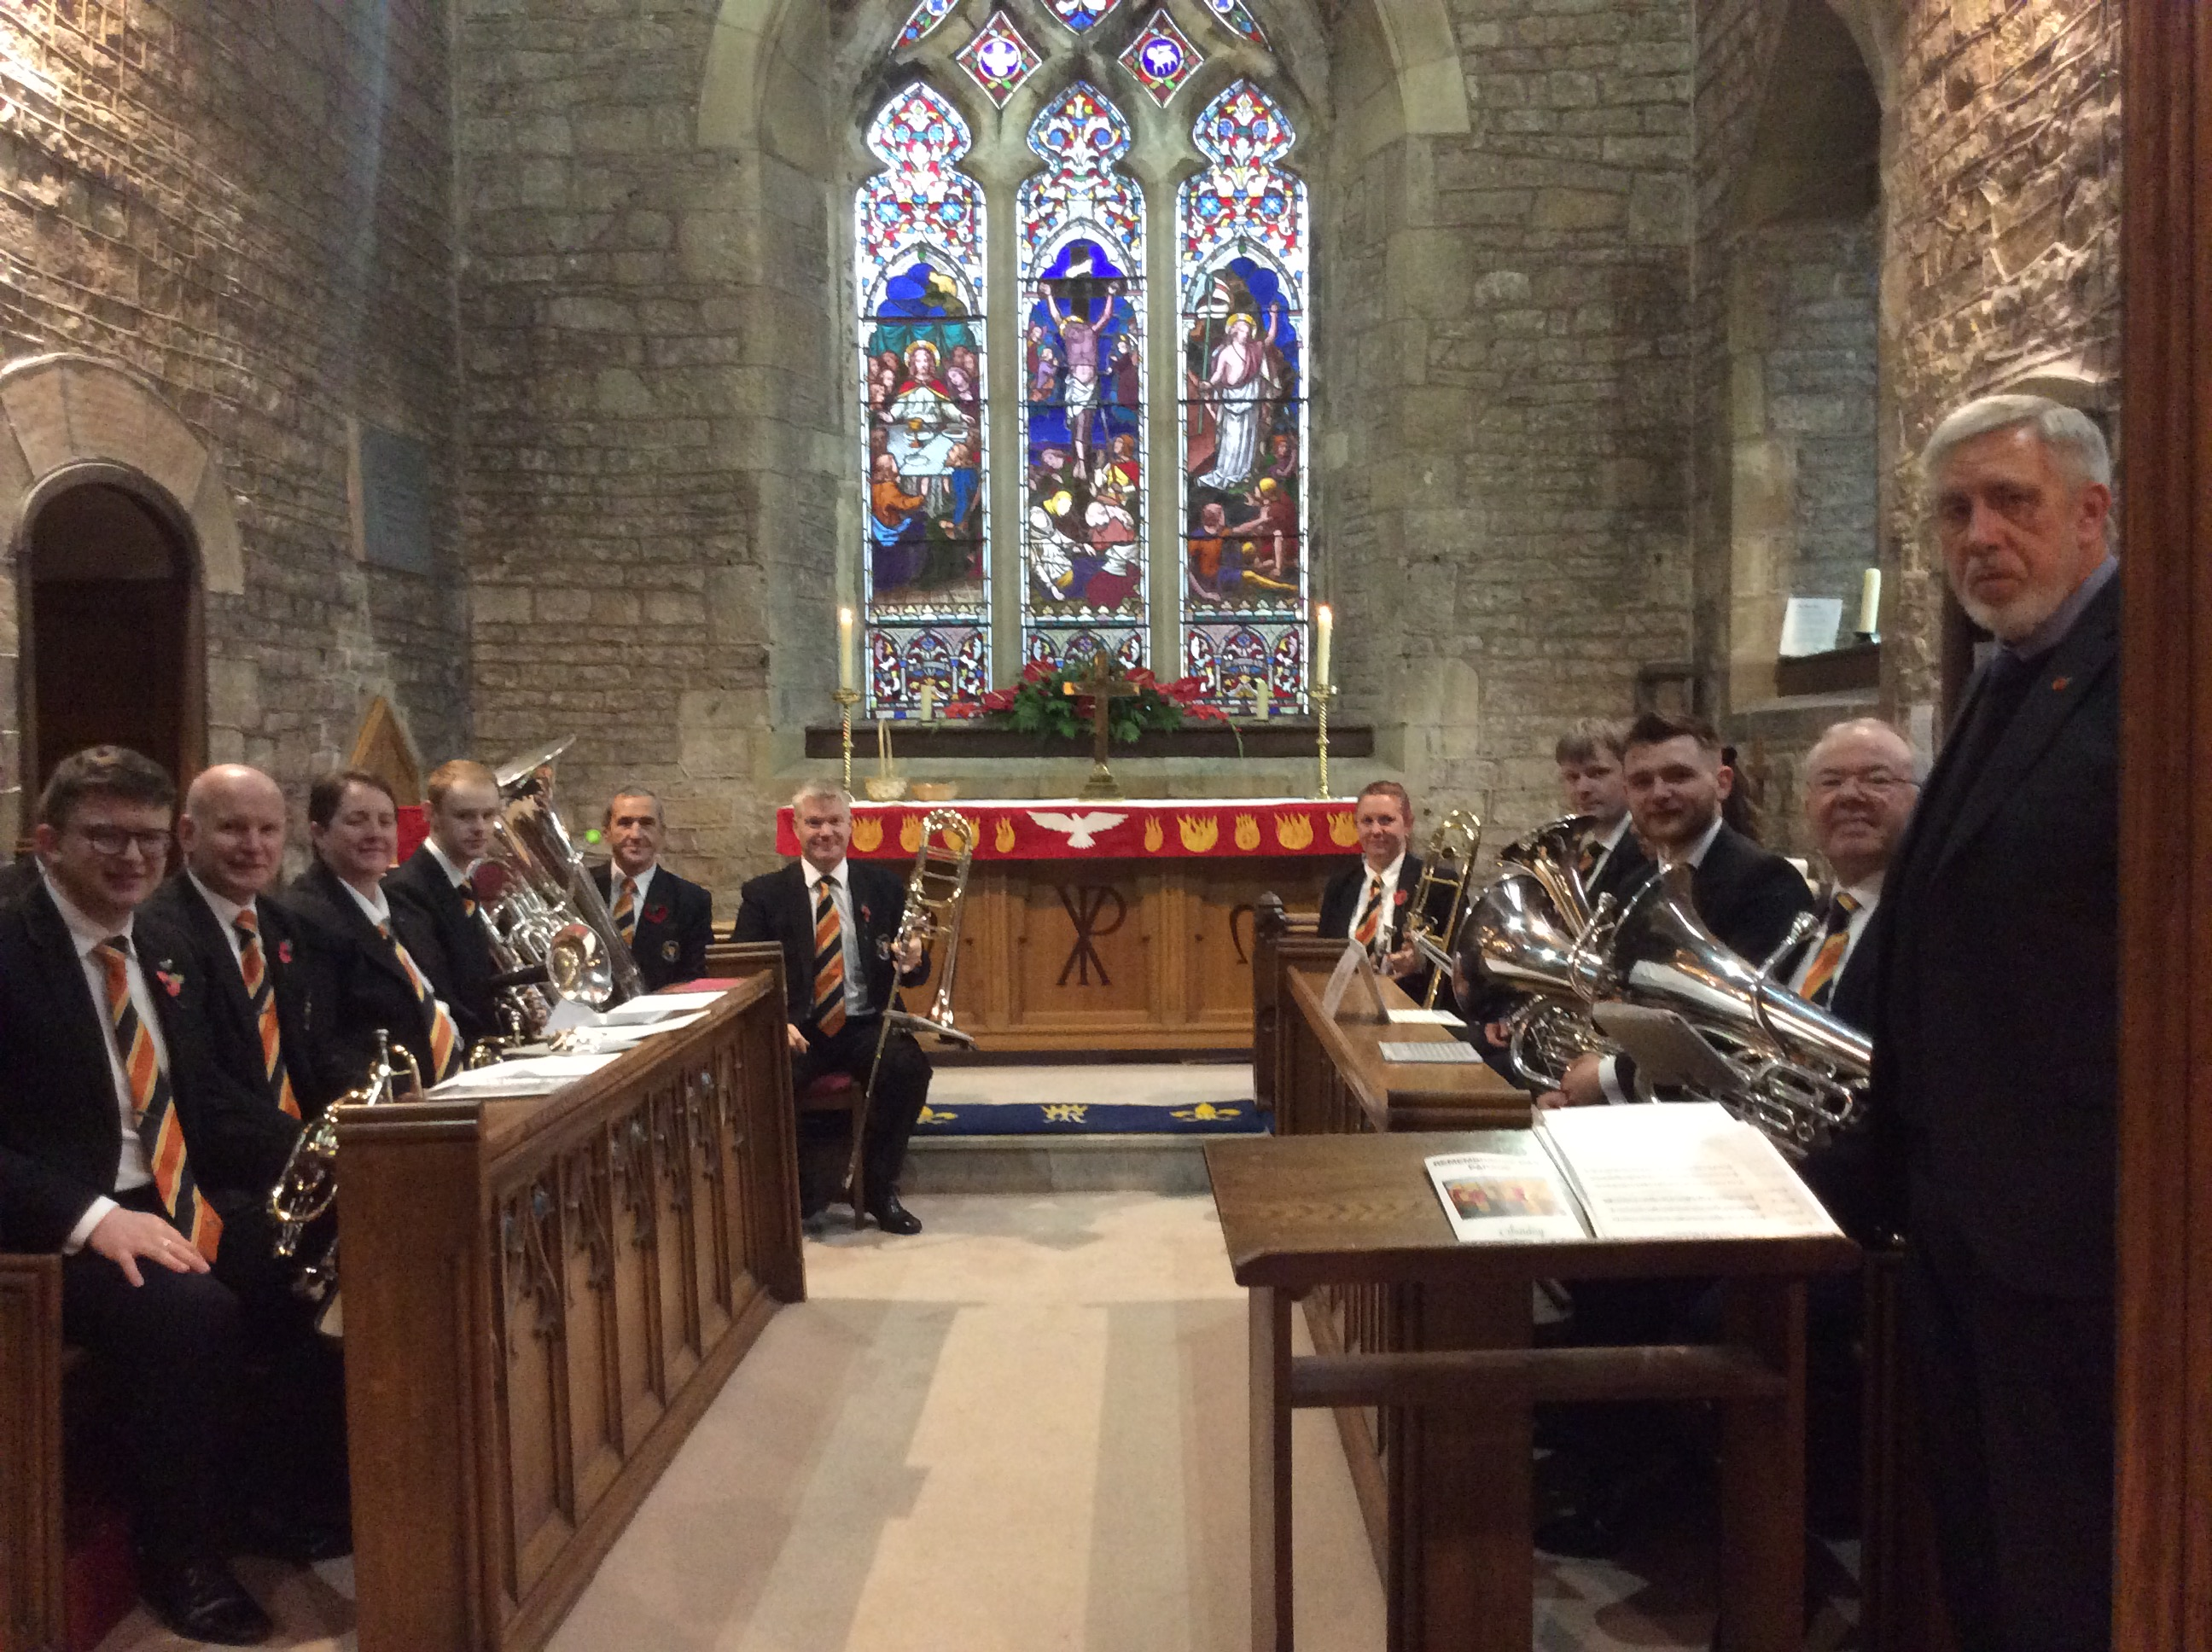 The renowned Thoresby Band.